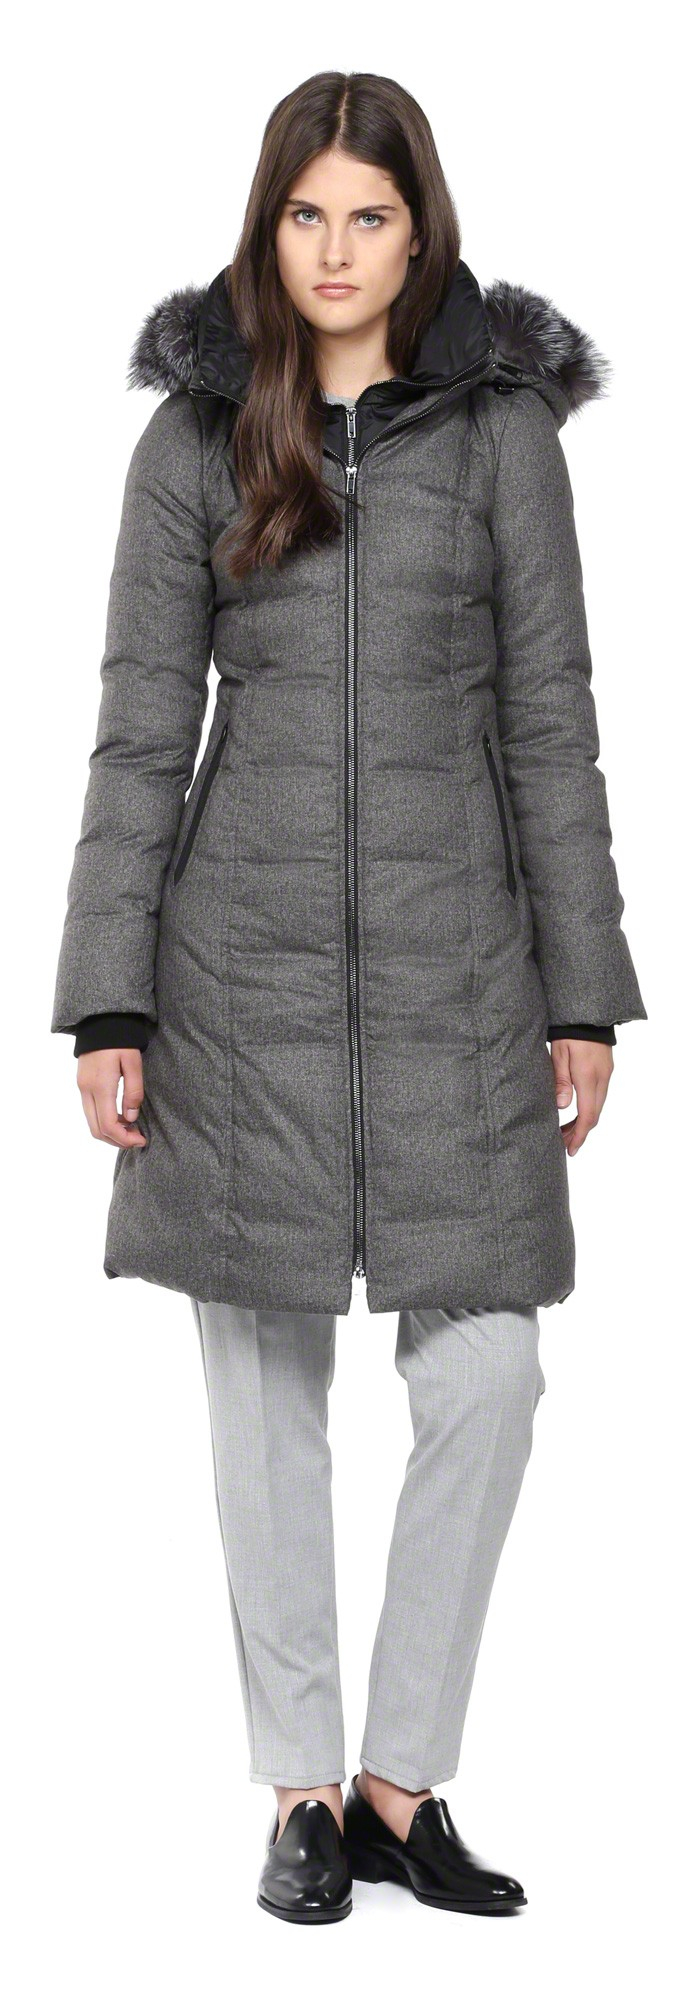 Soia & kyo Liva-Sp Long Grey Down Coat With Fur Hood in Gray | Lyst